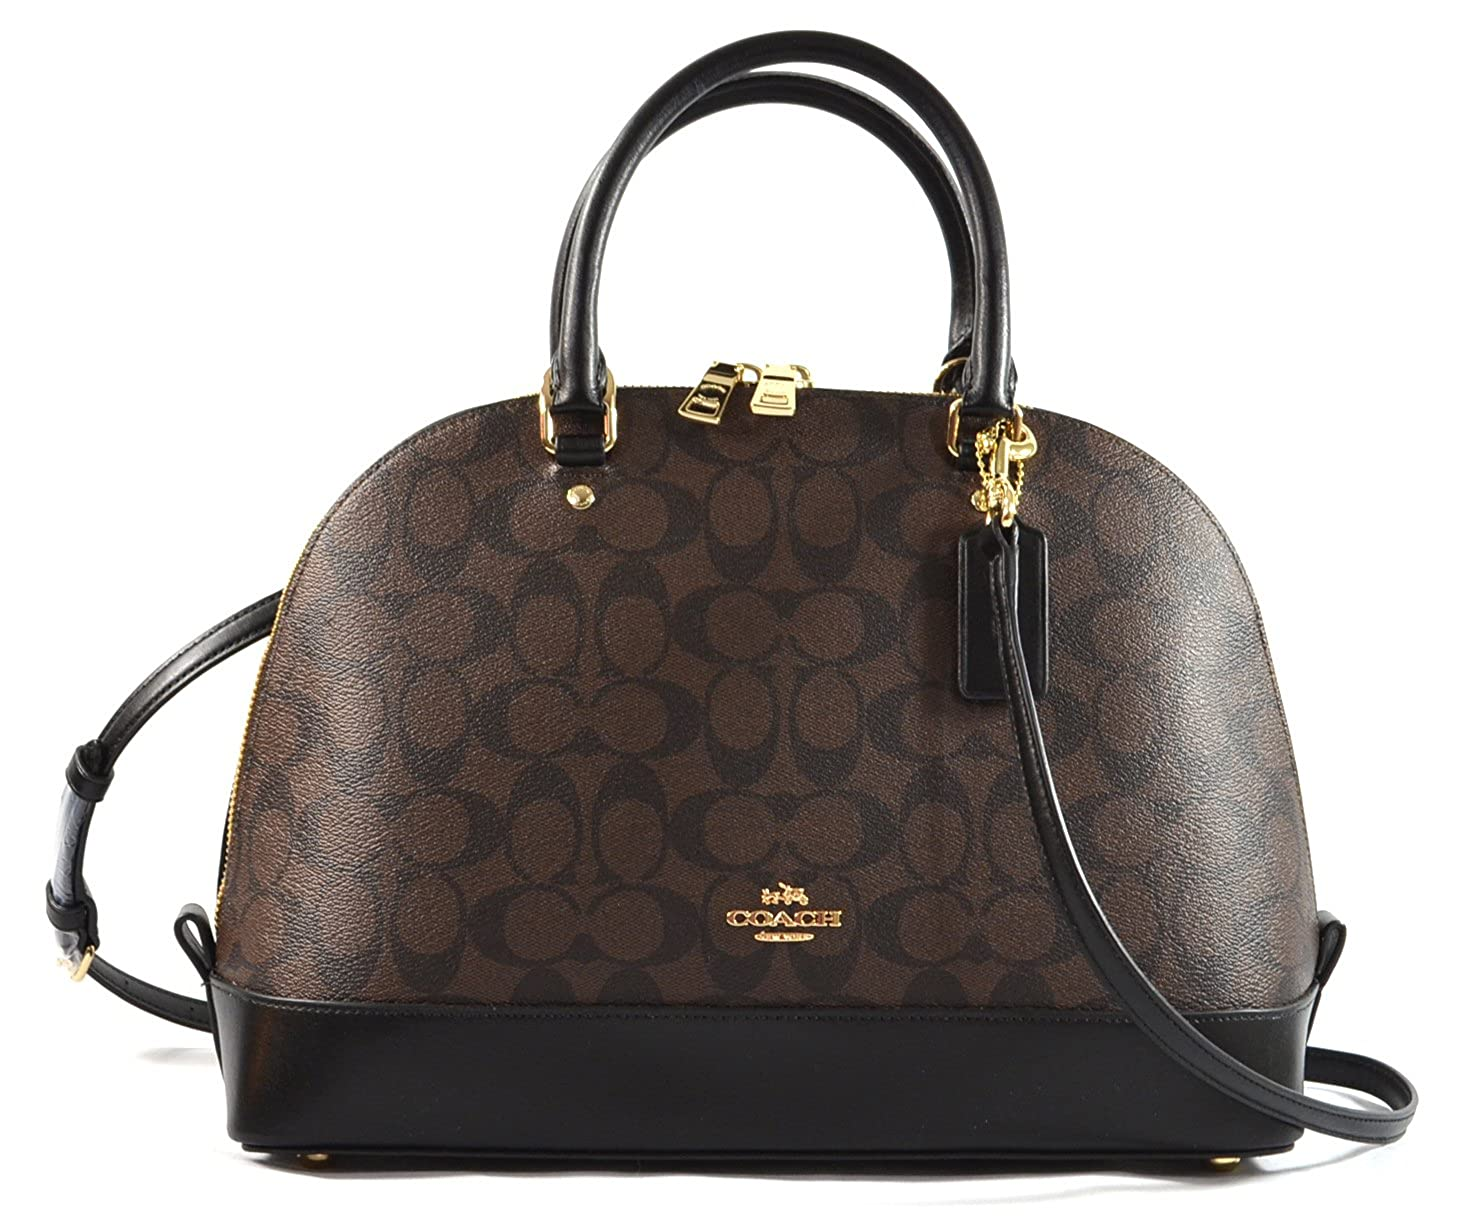 52dd133025d28 Amazon.com: Coach Sierra Satchel Signature Coated Canvas handbag  Brown/Black: Clothing